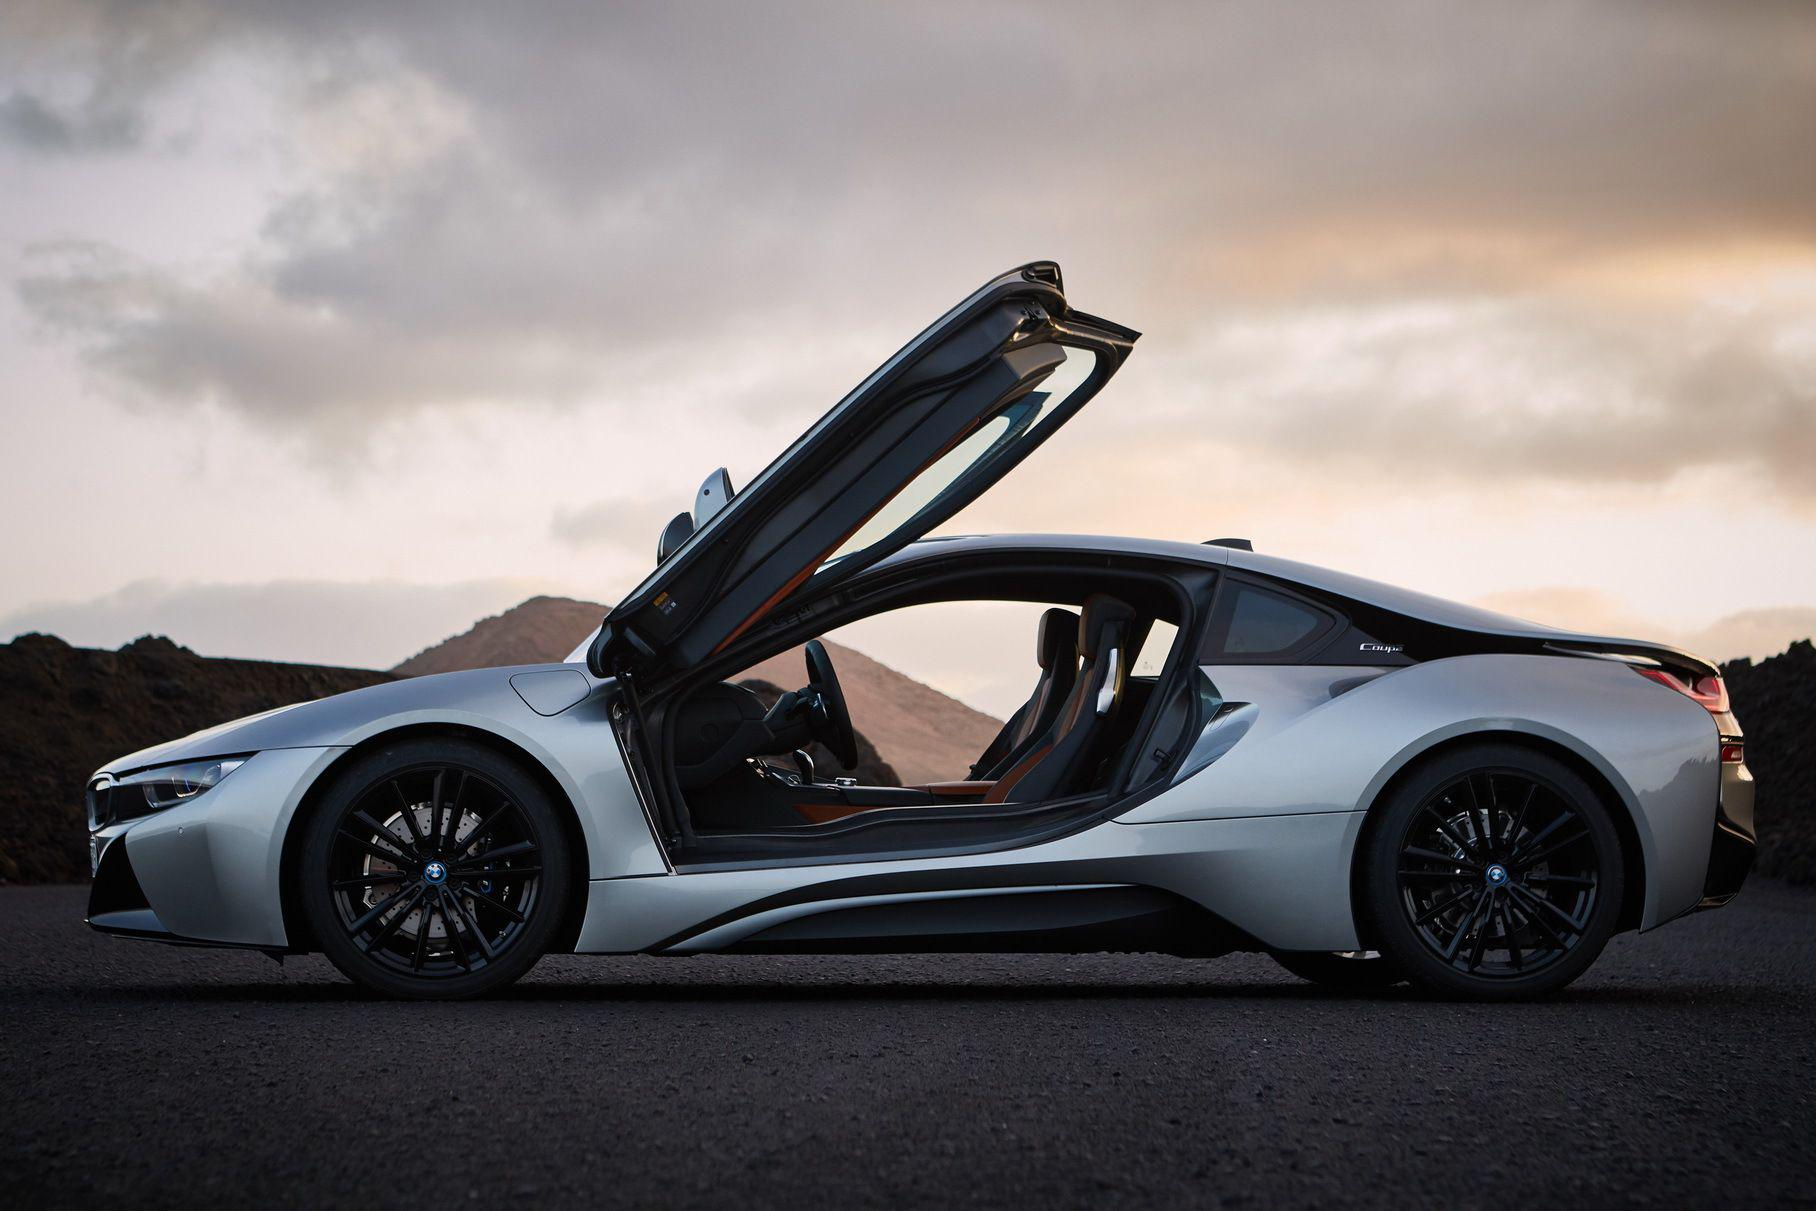 Following last year's rumors that the BMW i8 would go out of production soon, the official confirmation was released today. The orders will close in late February, and the production lines will stop in April.